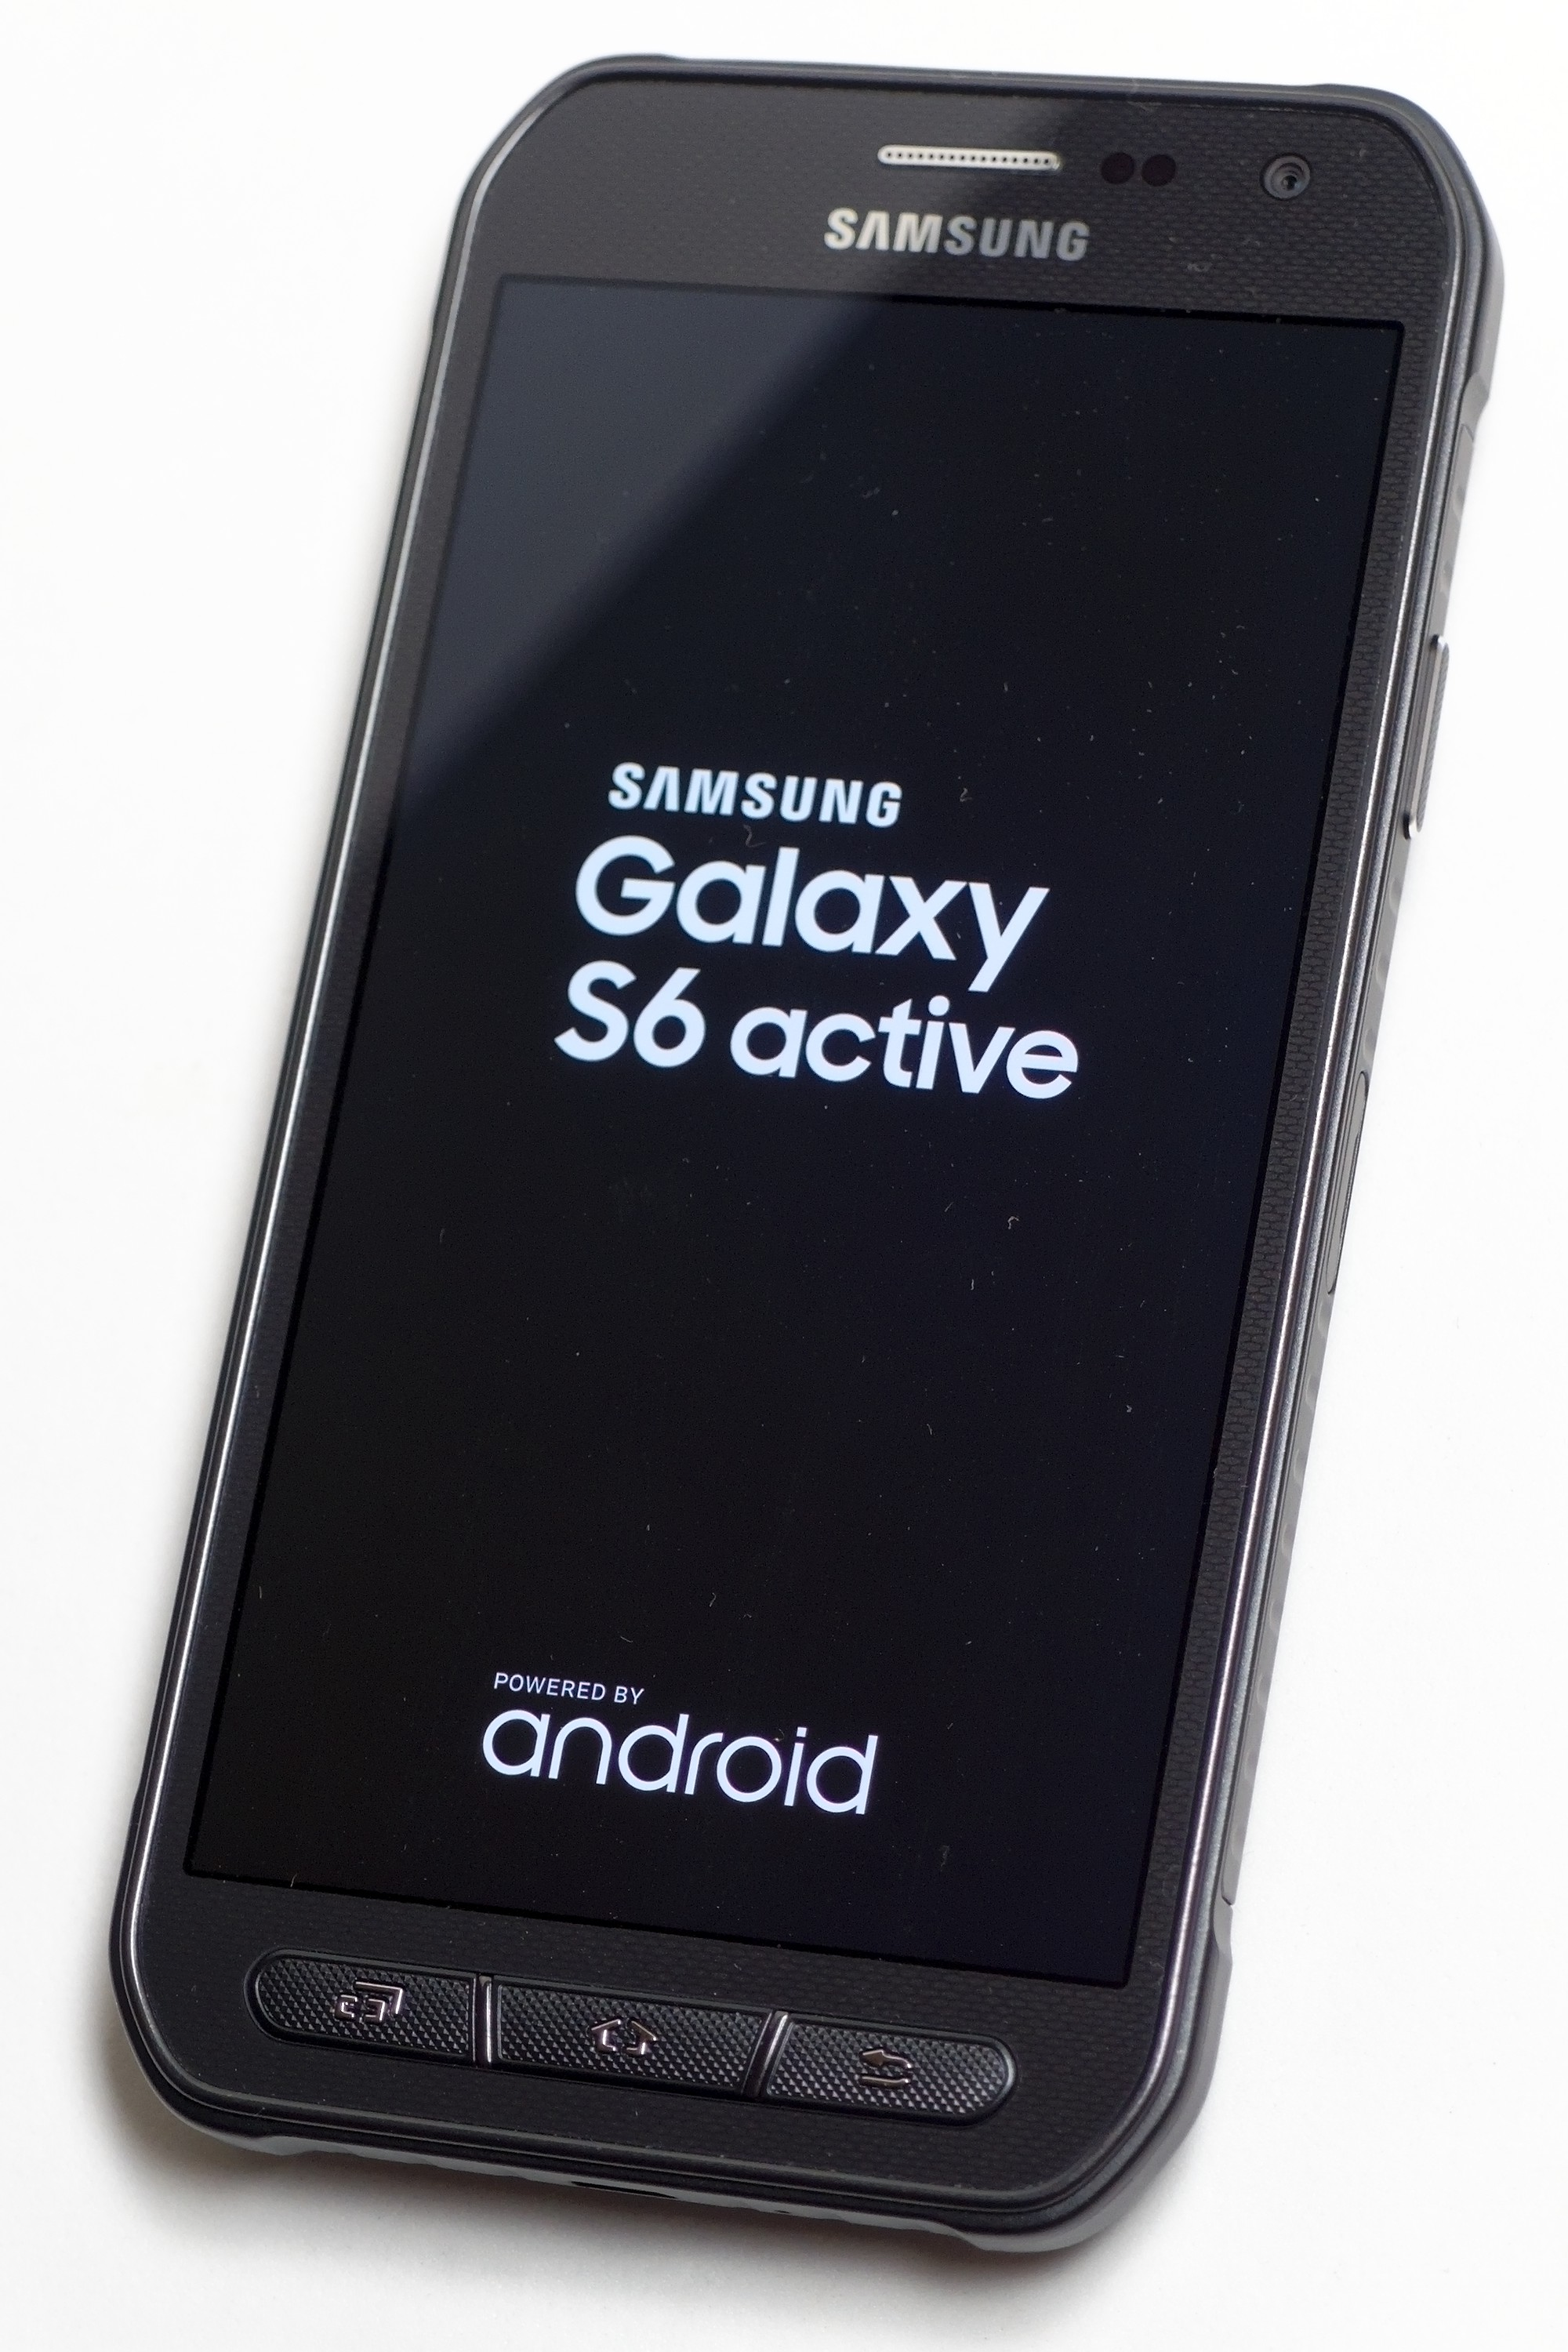 Samsung Galaxy S6 Active - Wikipedia